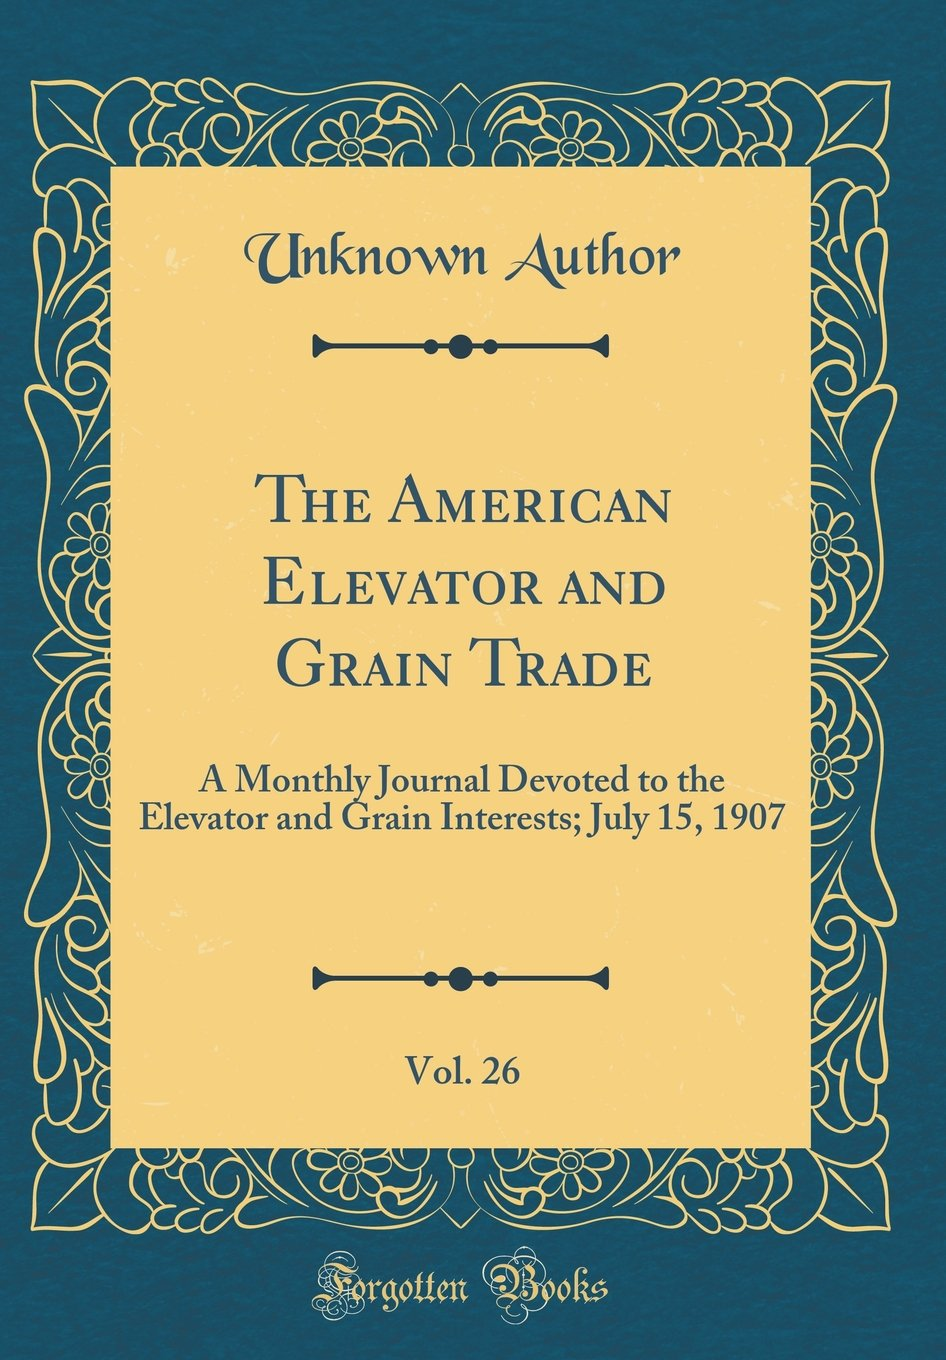 The American Elevator and Grain Trade, Vol. 26: A Monthly Journal Devoted to the Elevator and Grain Interests; July 15, 1907 (Classic Reprint) PDF